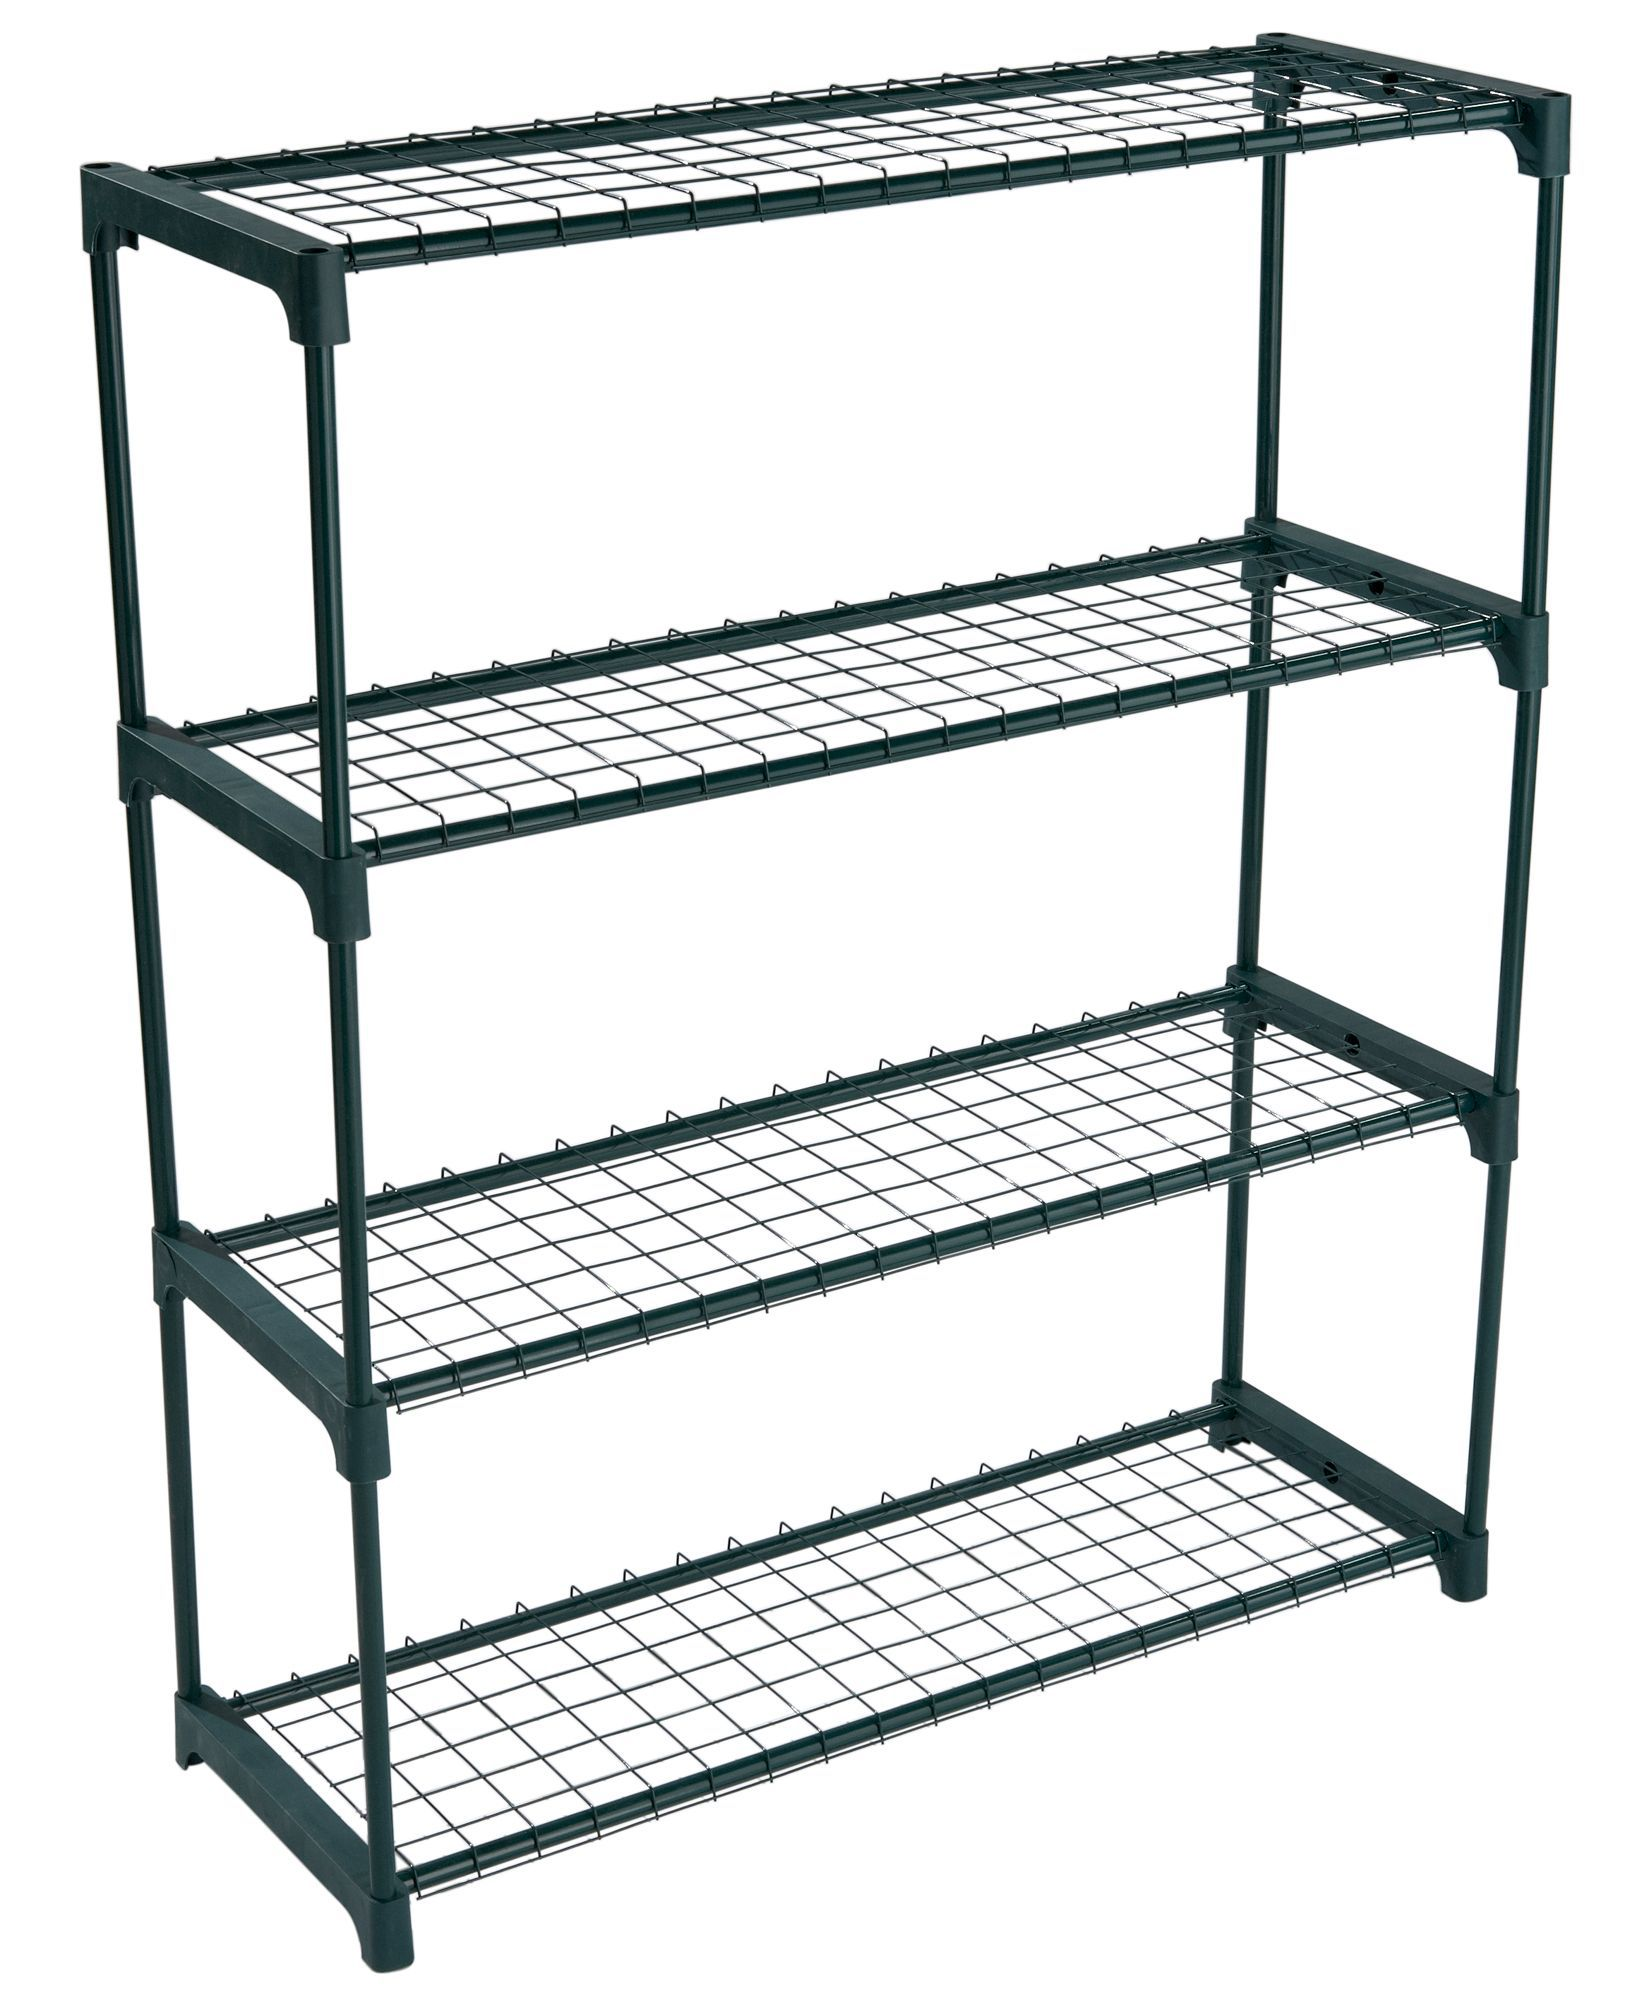 Diy At B Q: B&Q Greenhouse Shelving